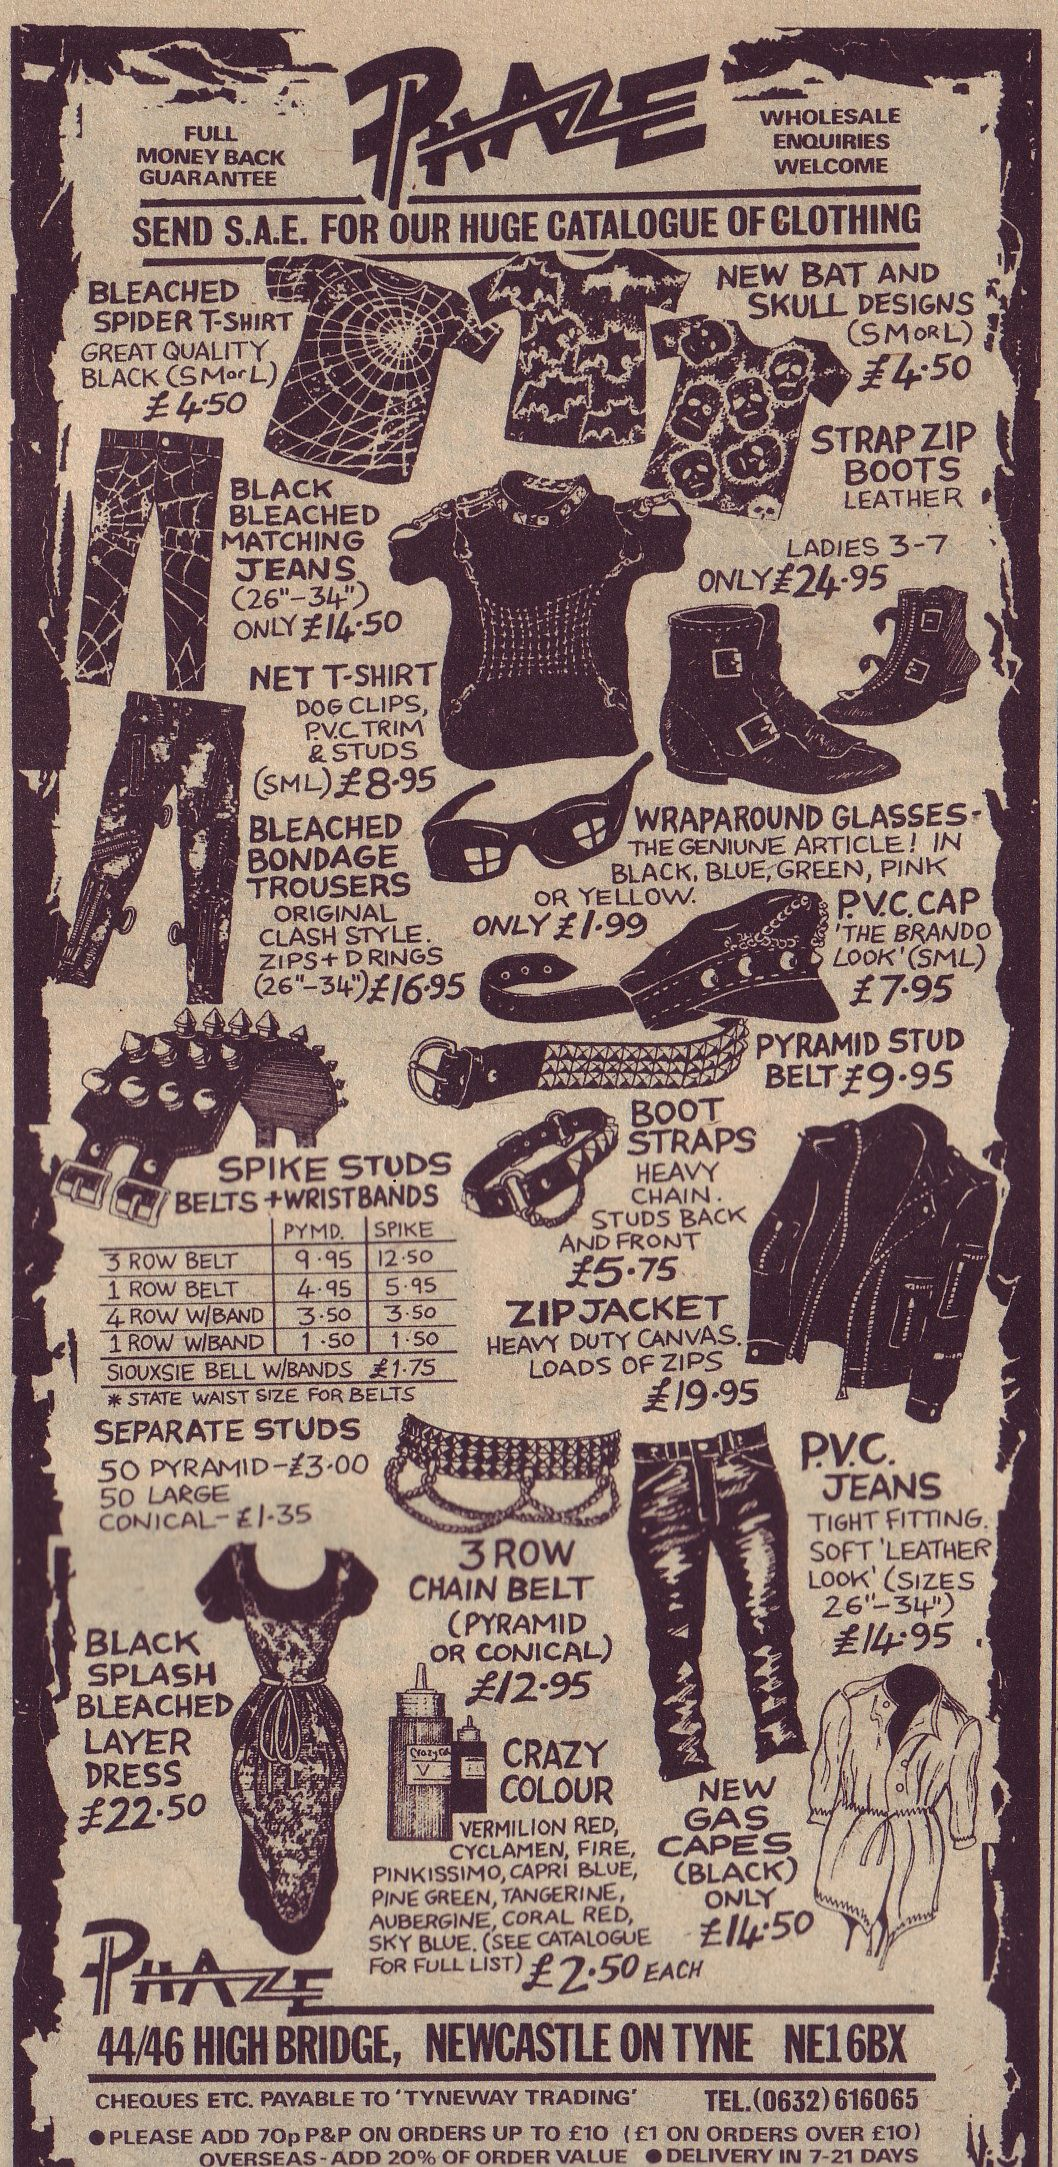 1983 fashion wish list